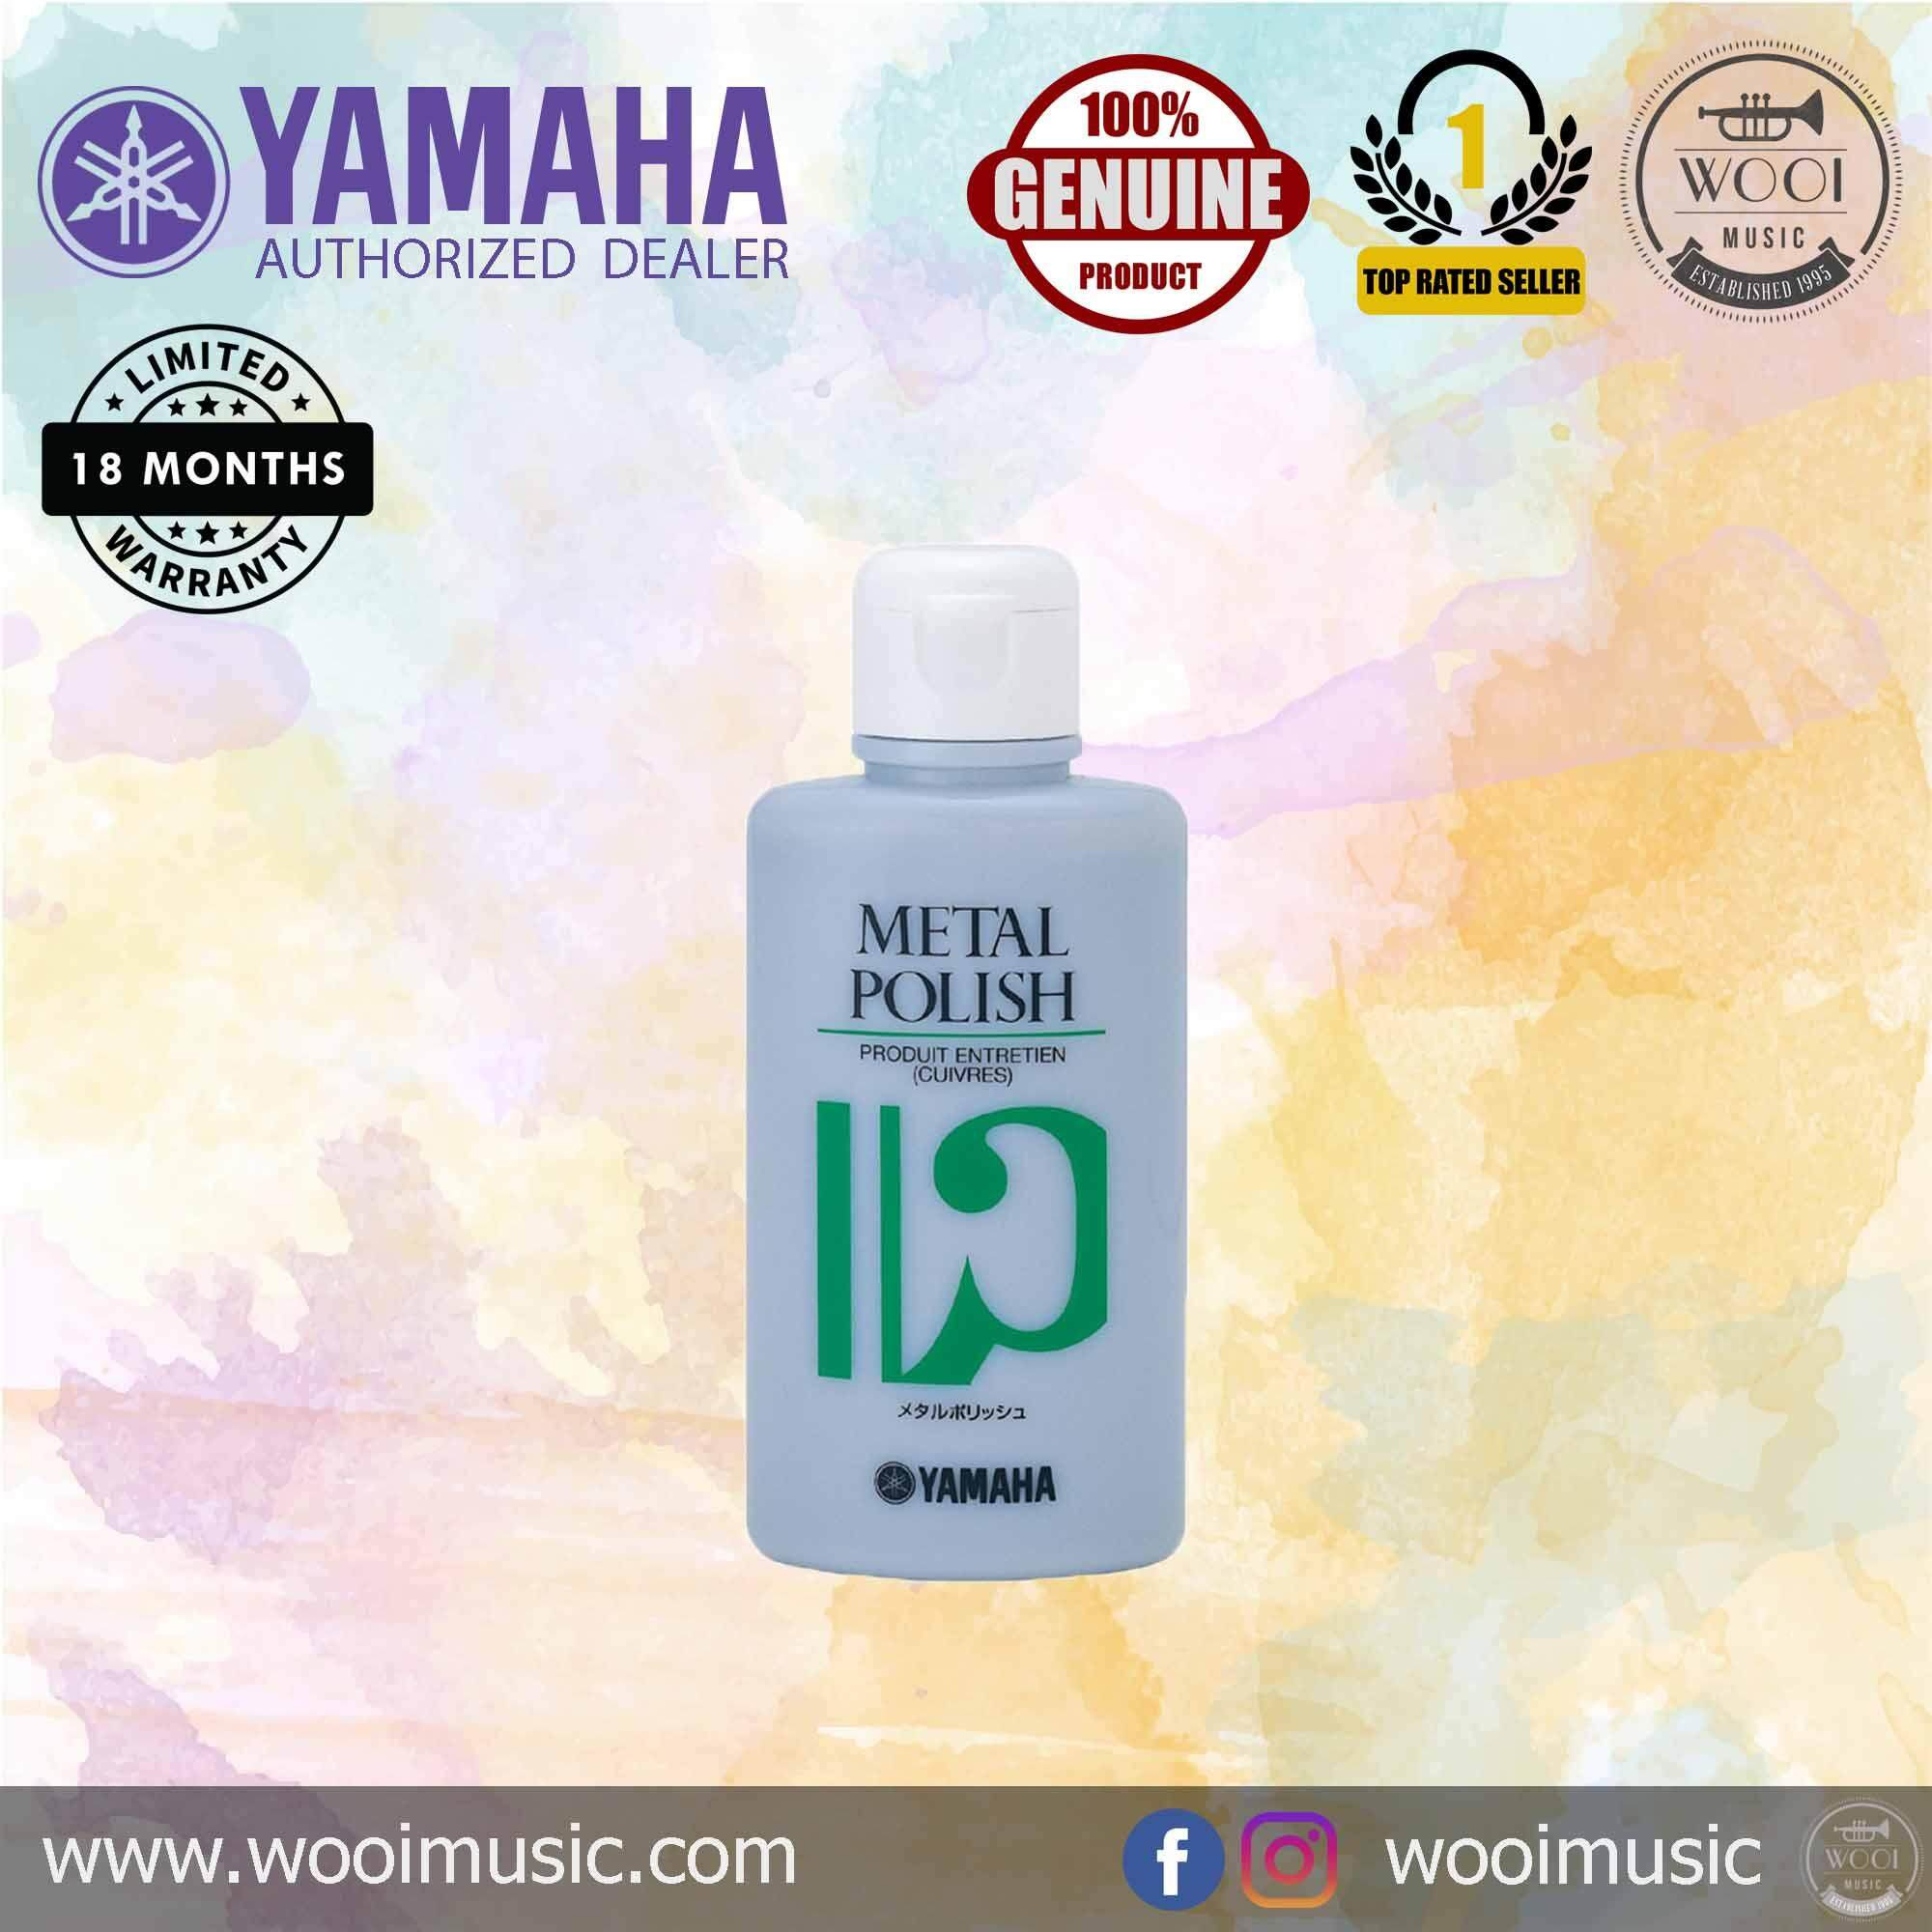 Yamaha Metal Polish